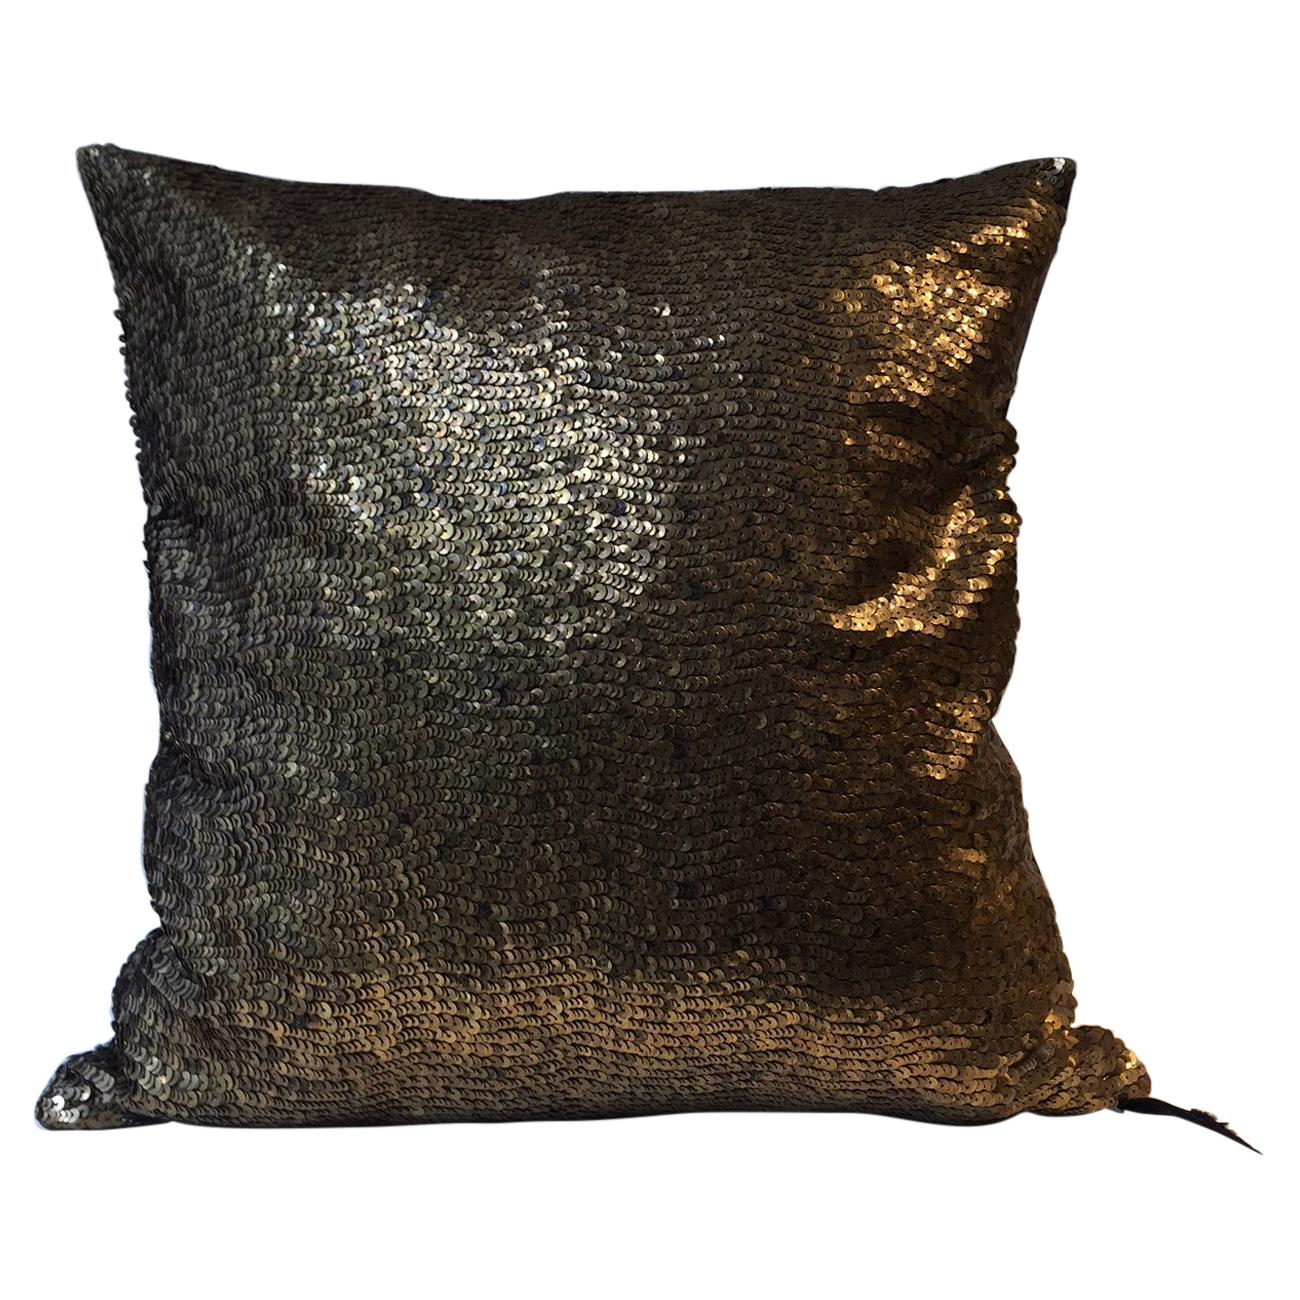 Bronze Gold Sequined Cushion Hand Embroidery on Silk Satin Color Chocolate Brown